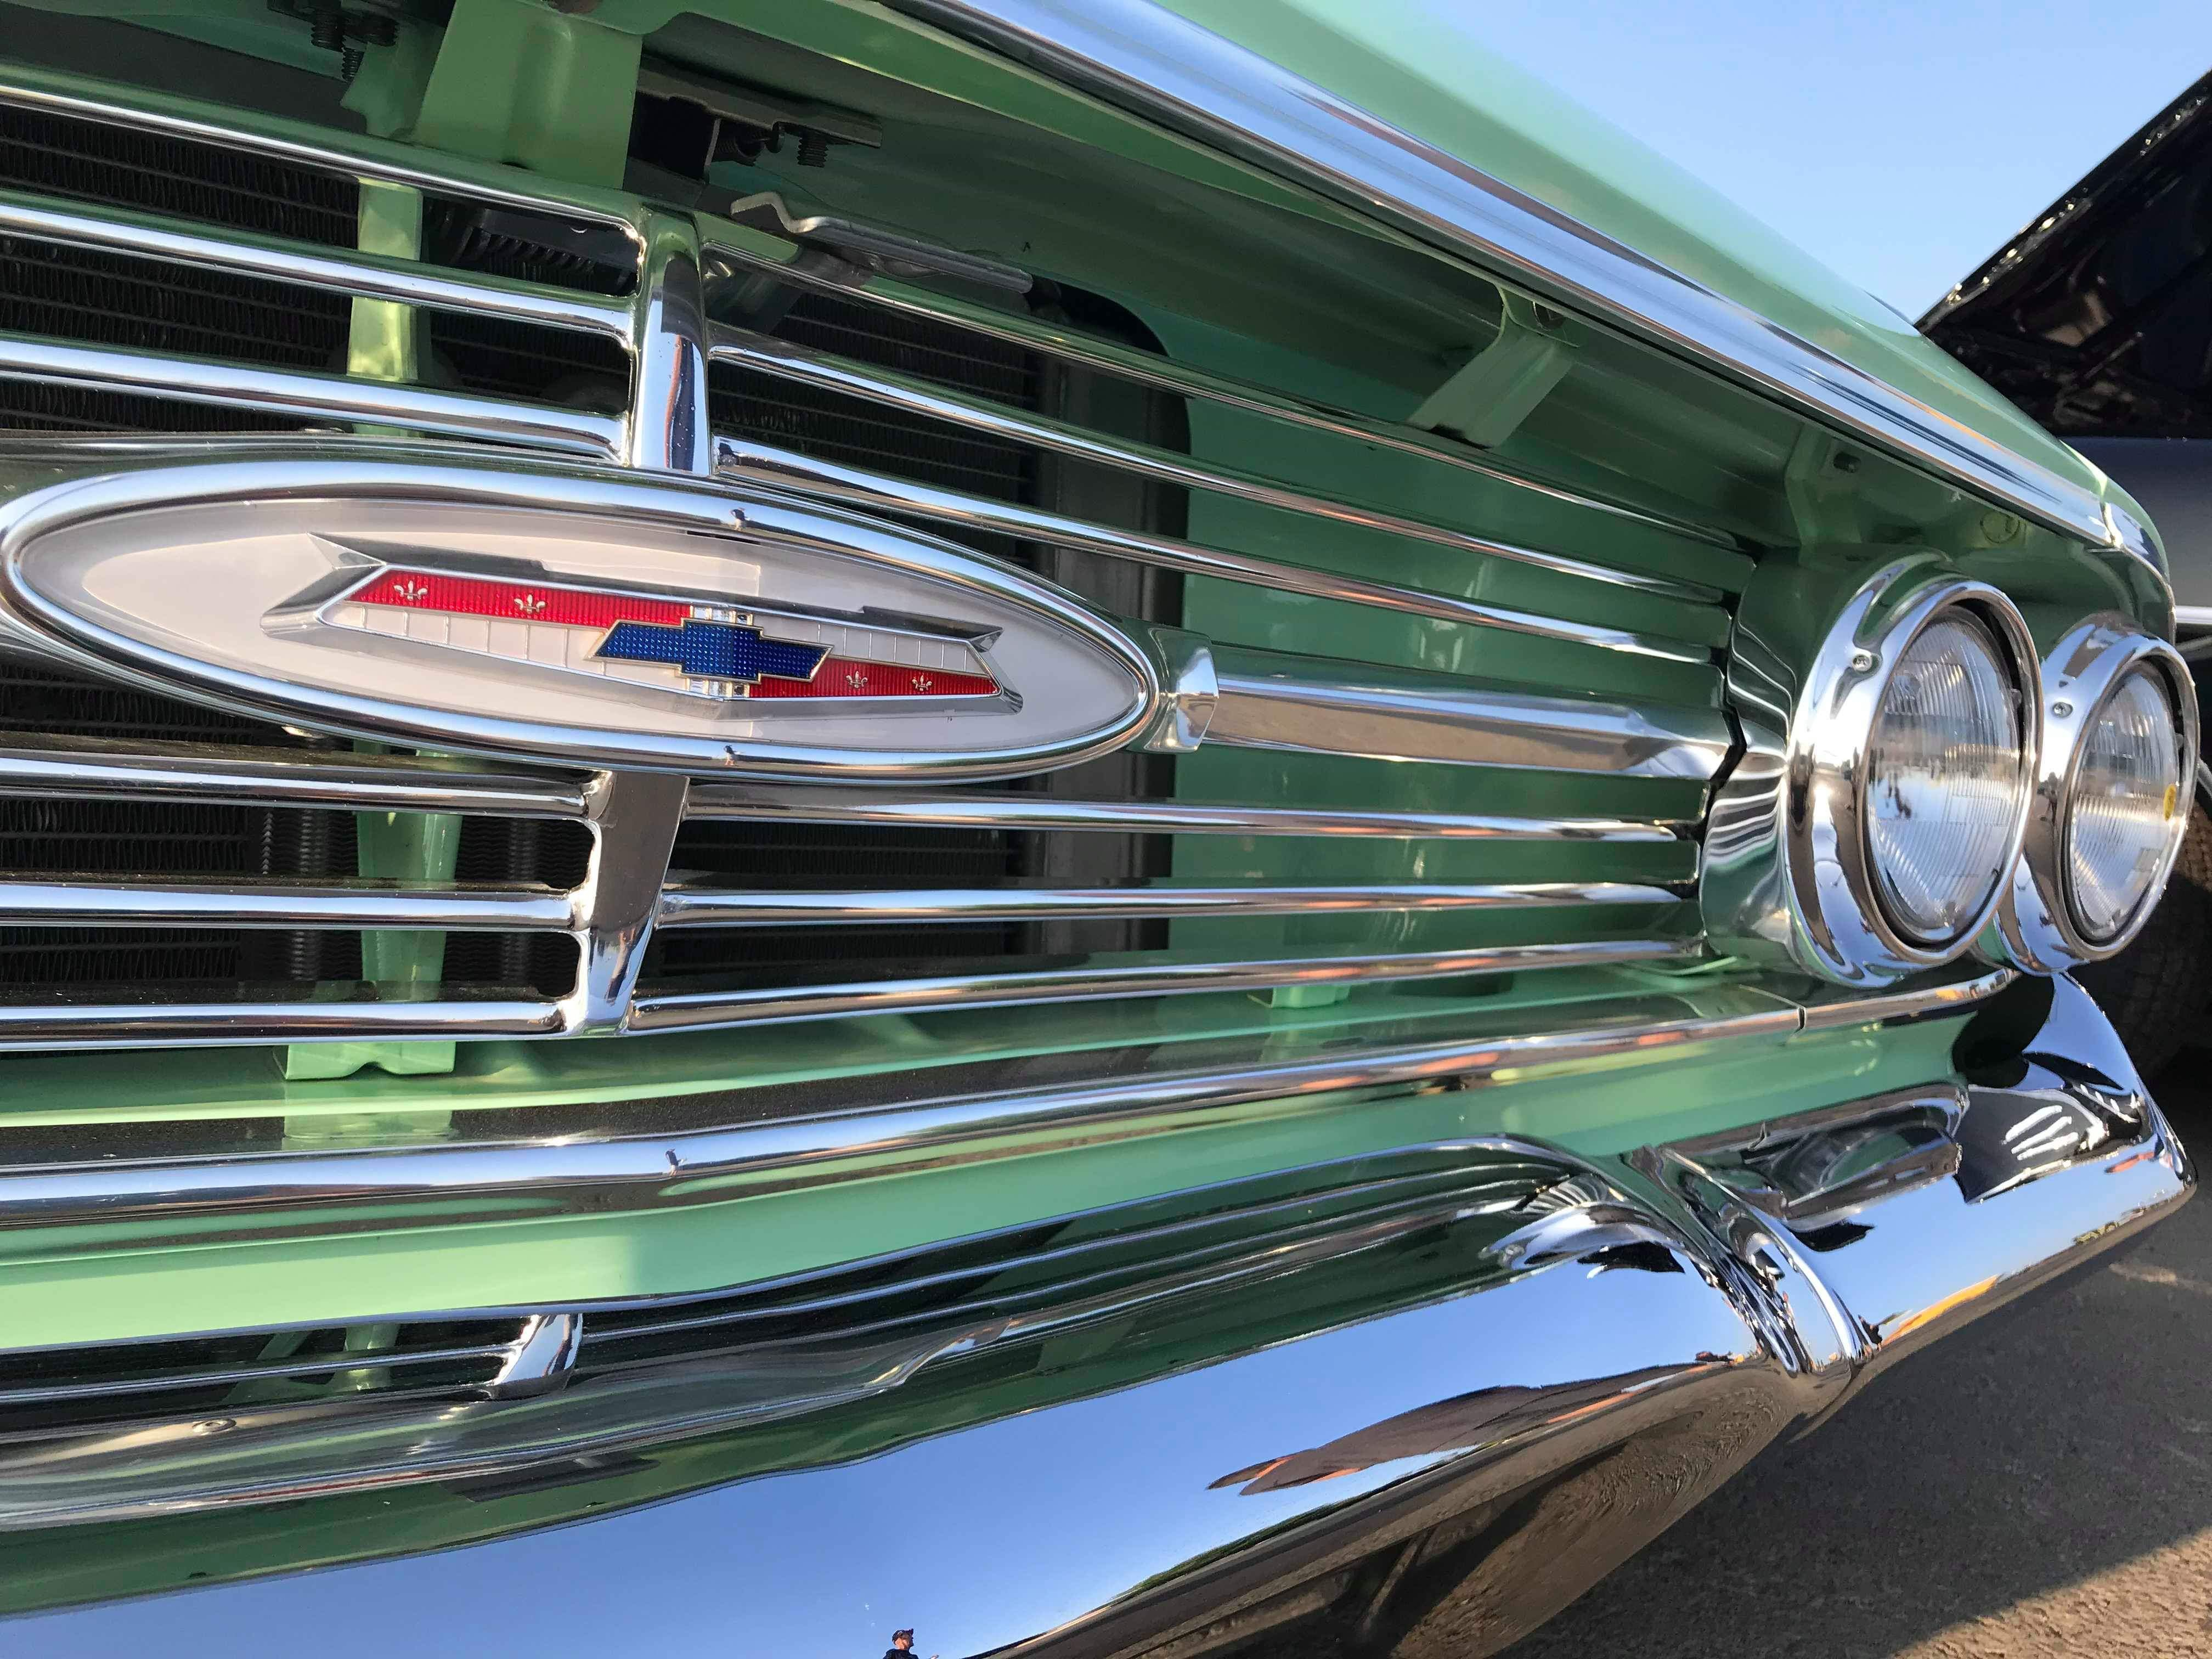 1960 Chevrolet Biscayne Green